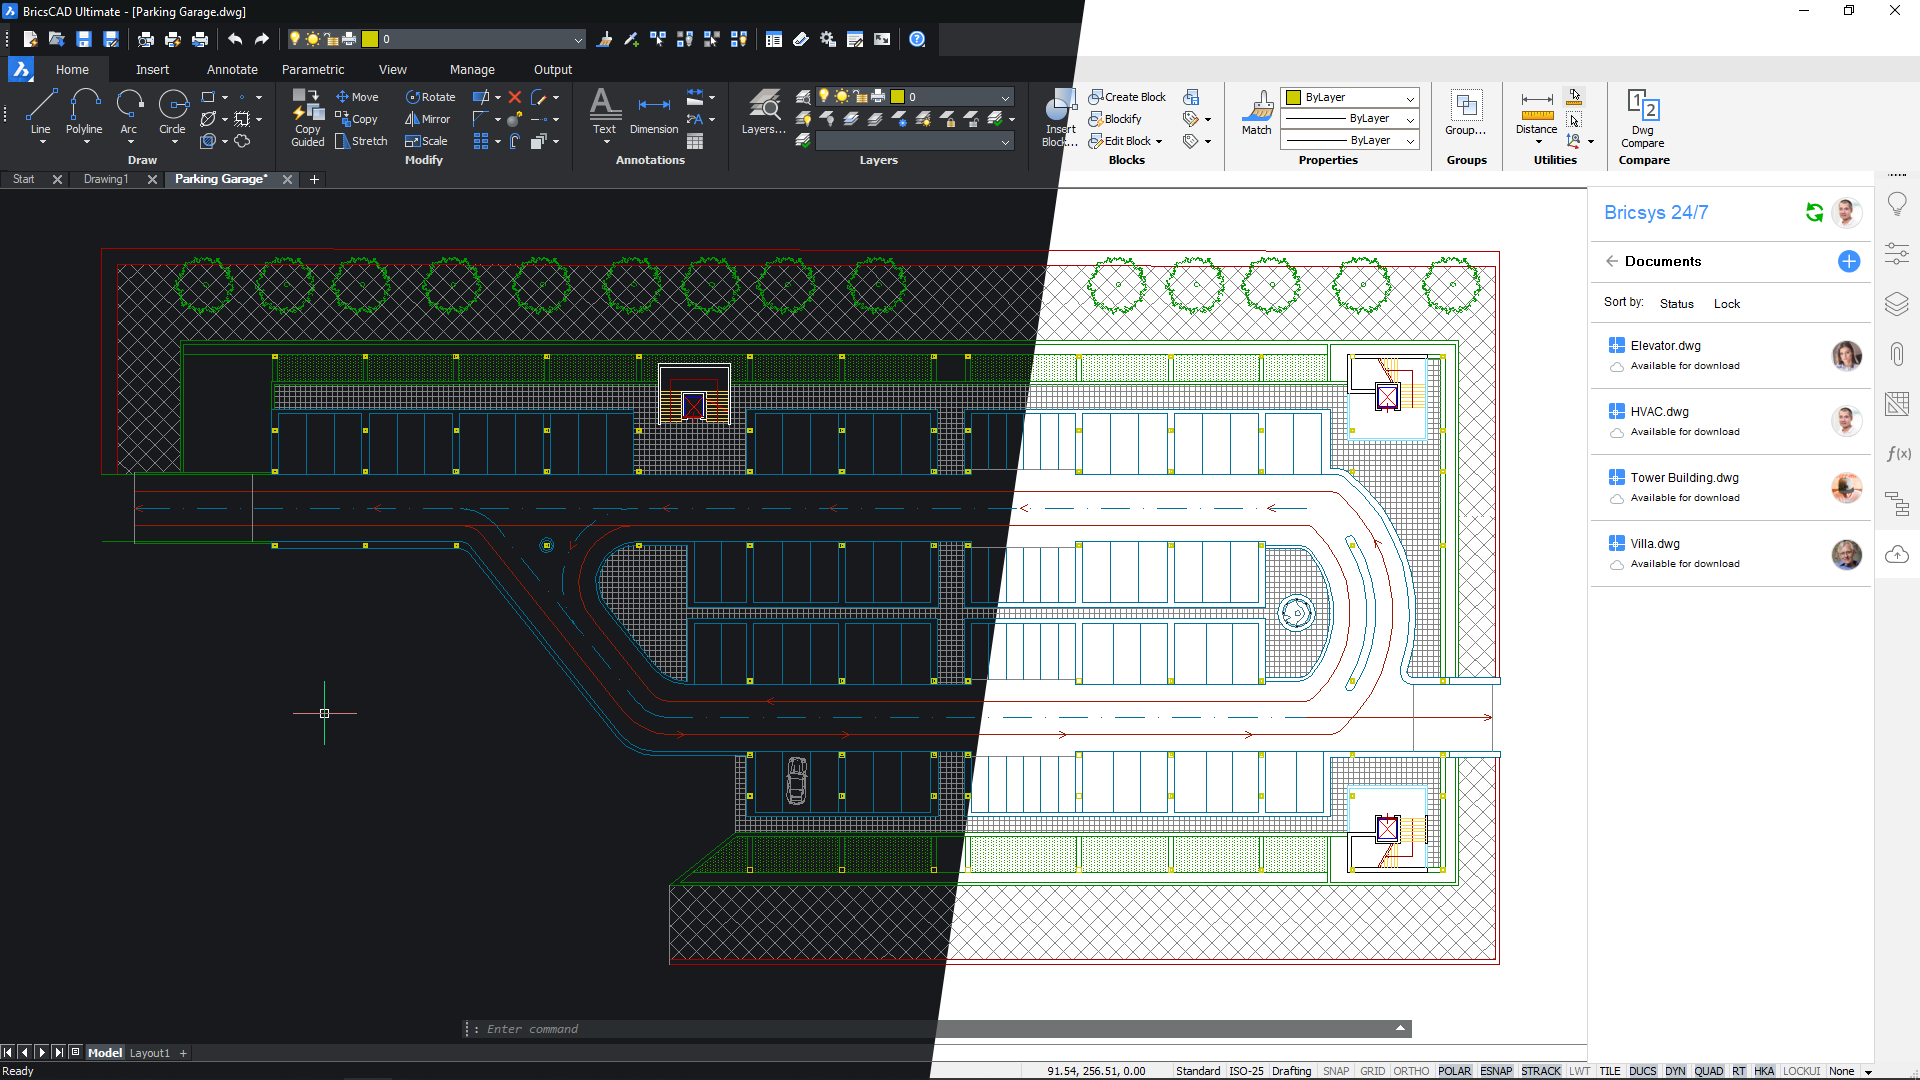 dark and light user interface BricsCAD V20